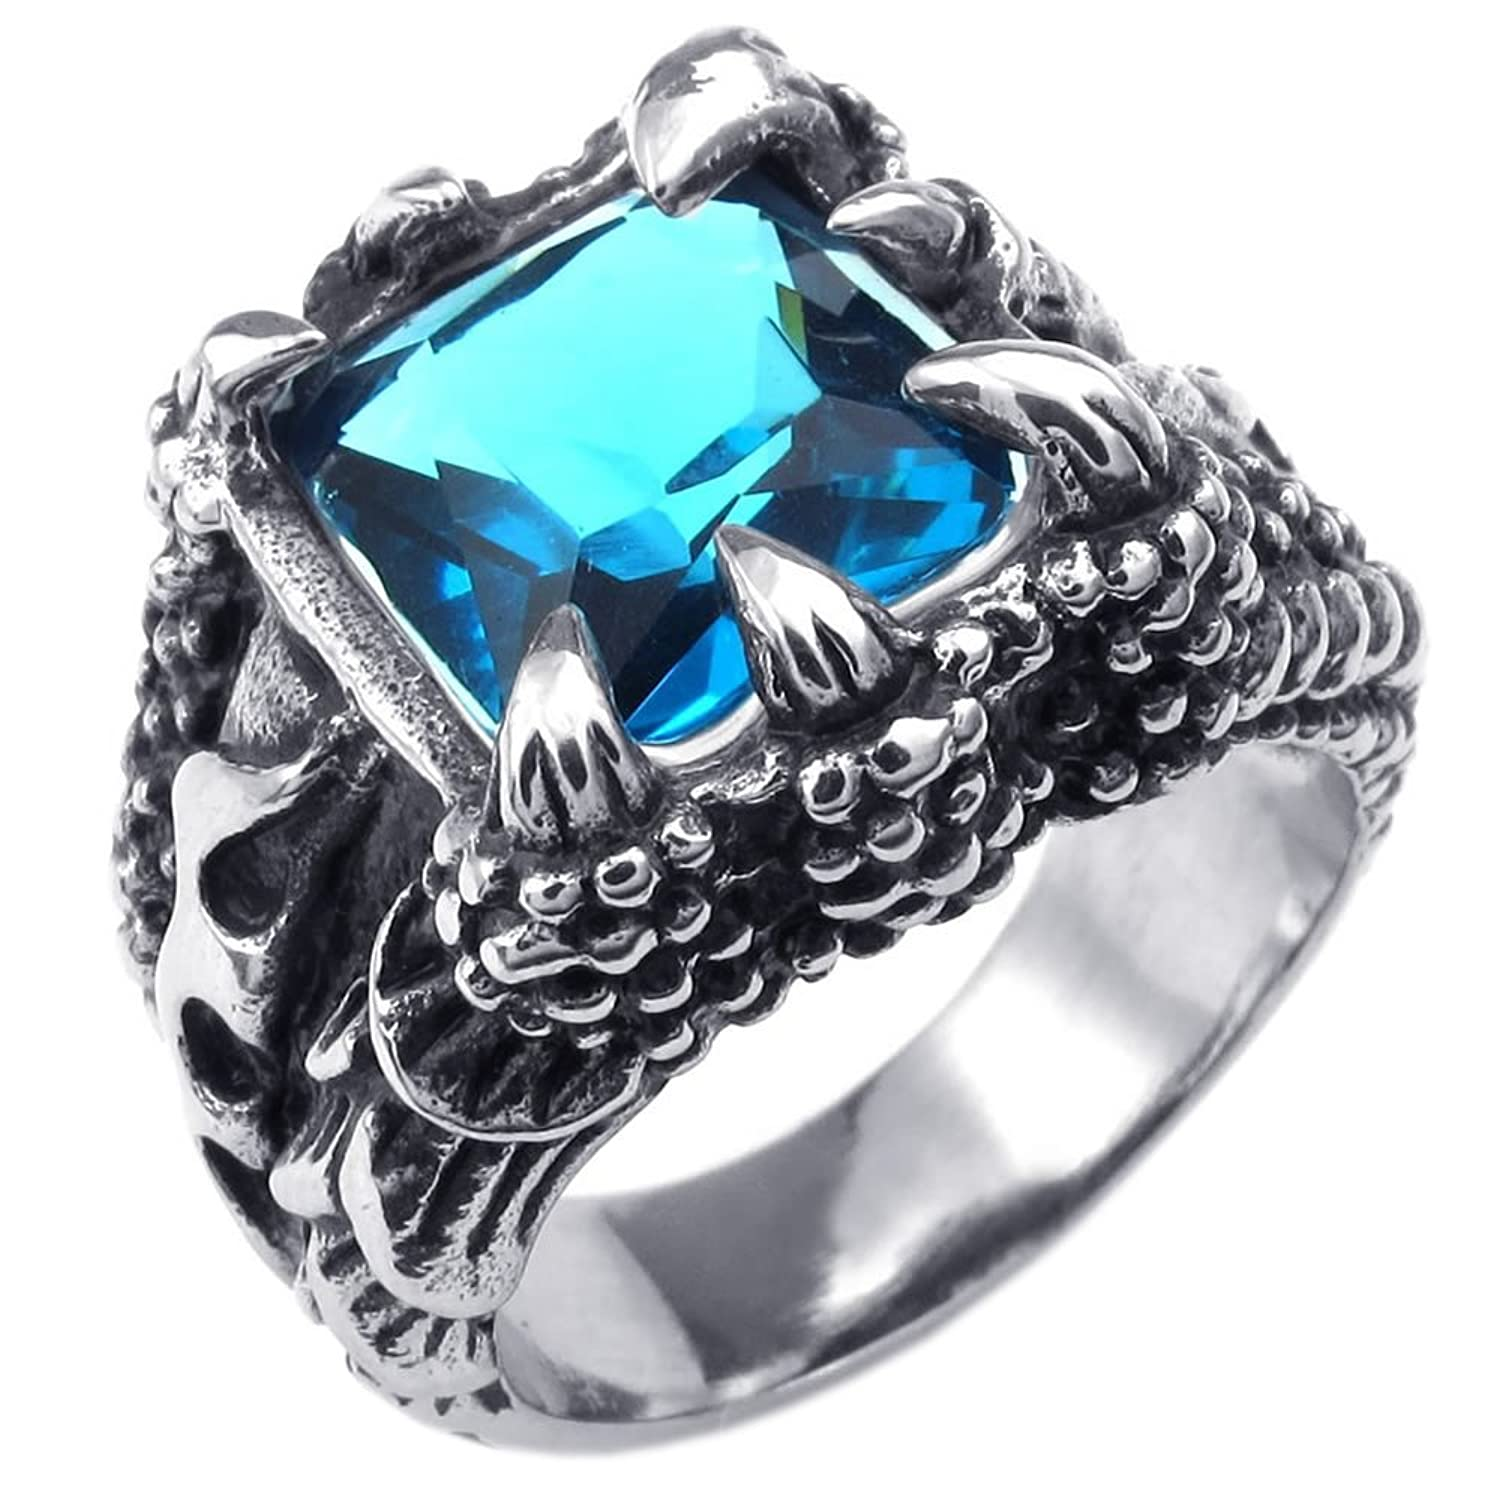 KONOV Mens Crystal Stainless Steel Ring Gothic Dragon Claw Blue